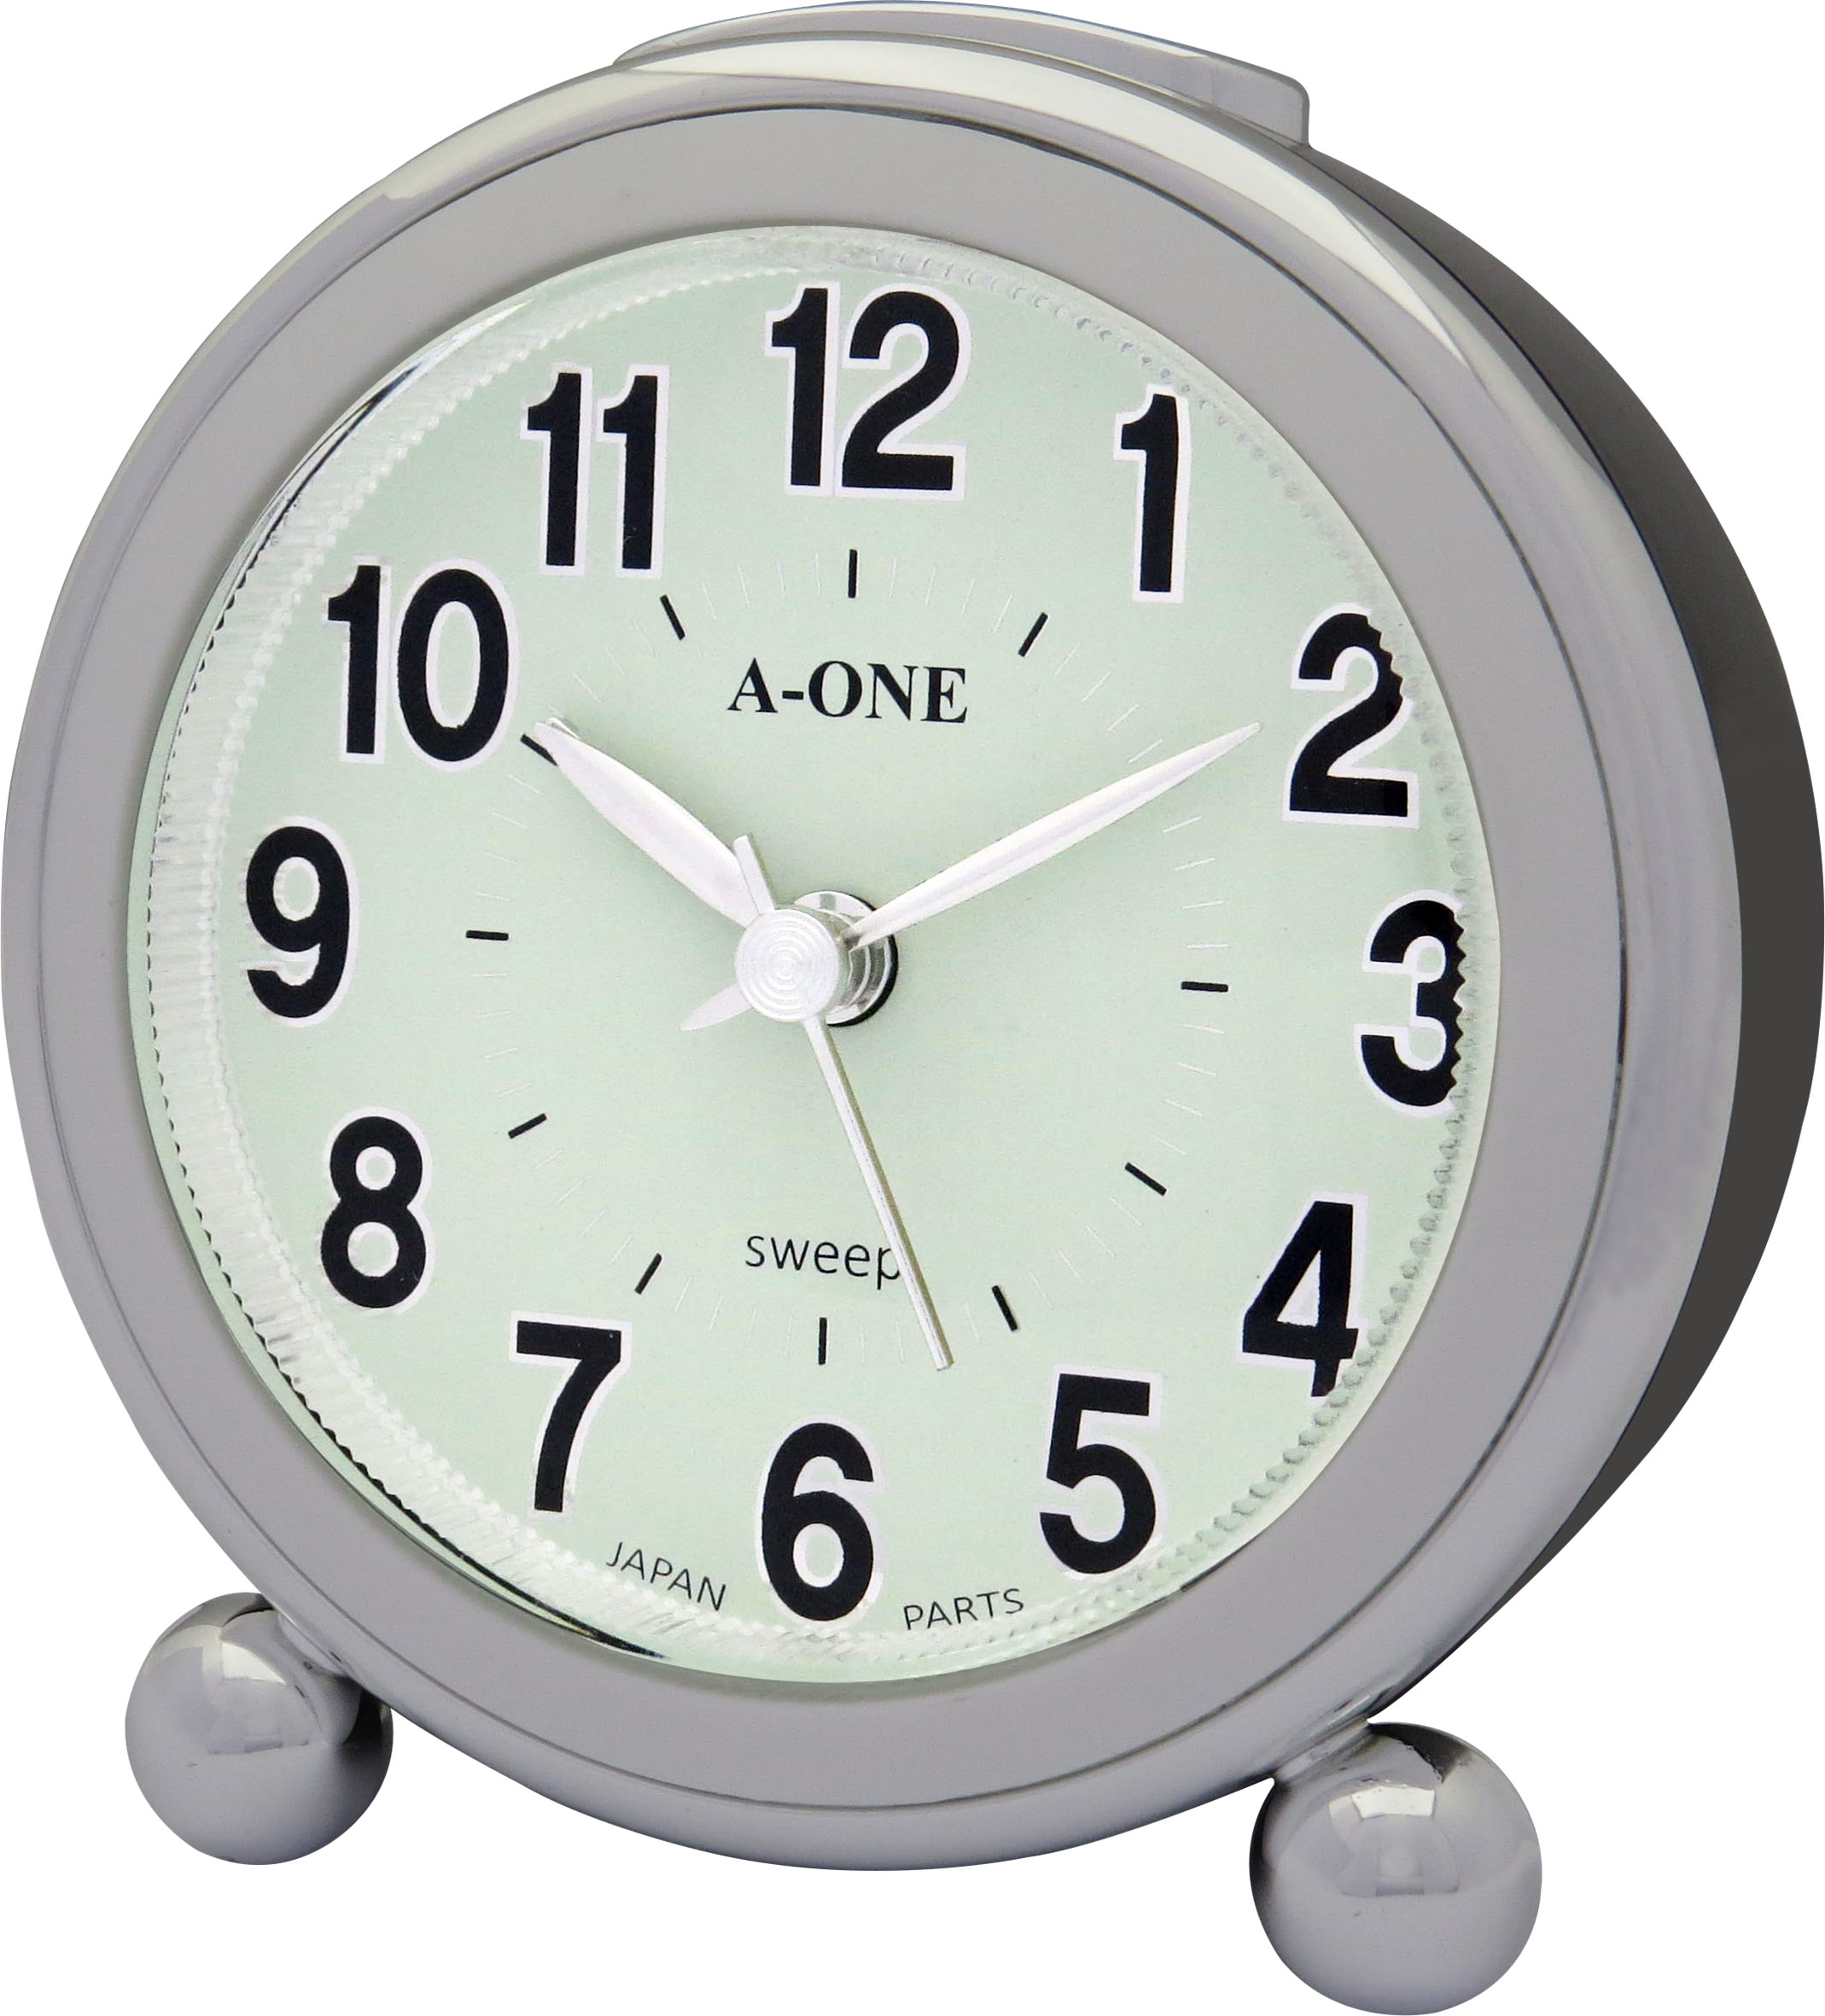 Customized Plastic Standing Wake Up Light Compact Table Alarm Clock For Home Decoration